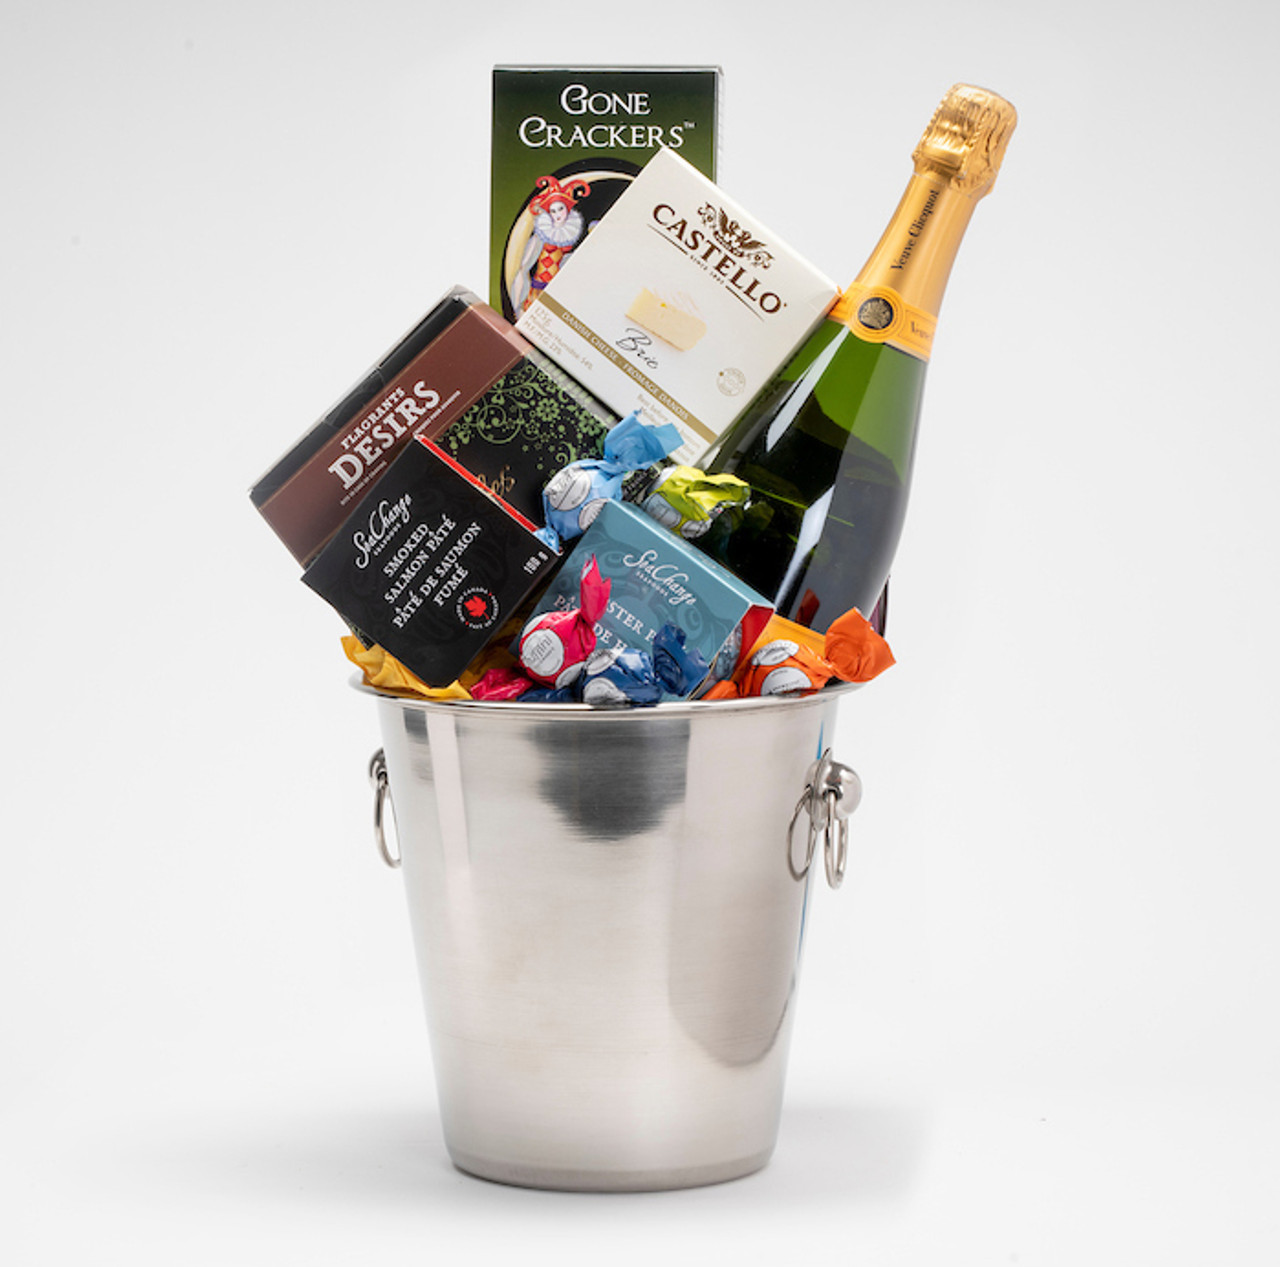 Gourmet gift basket featuring Veuve Clicquot, and sweet and savoury snacks (chocolate, crackers